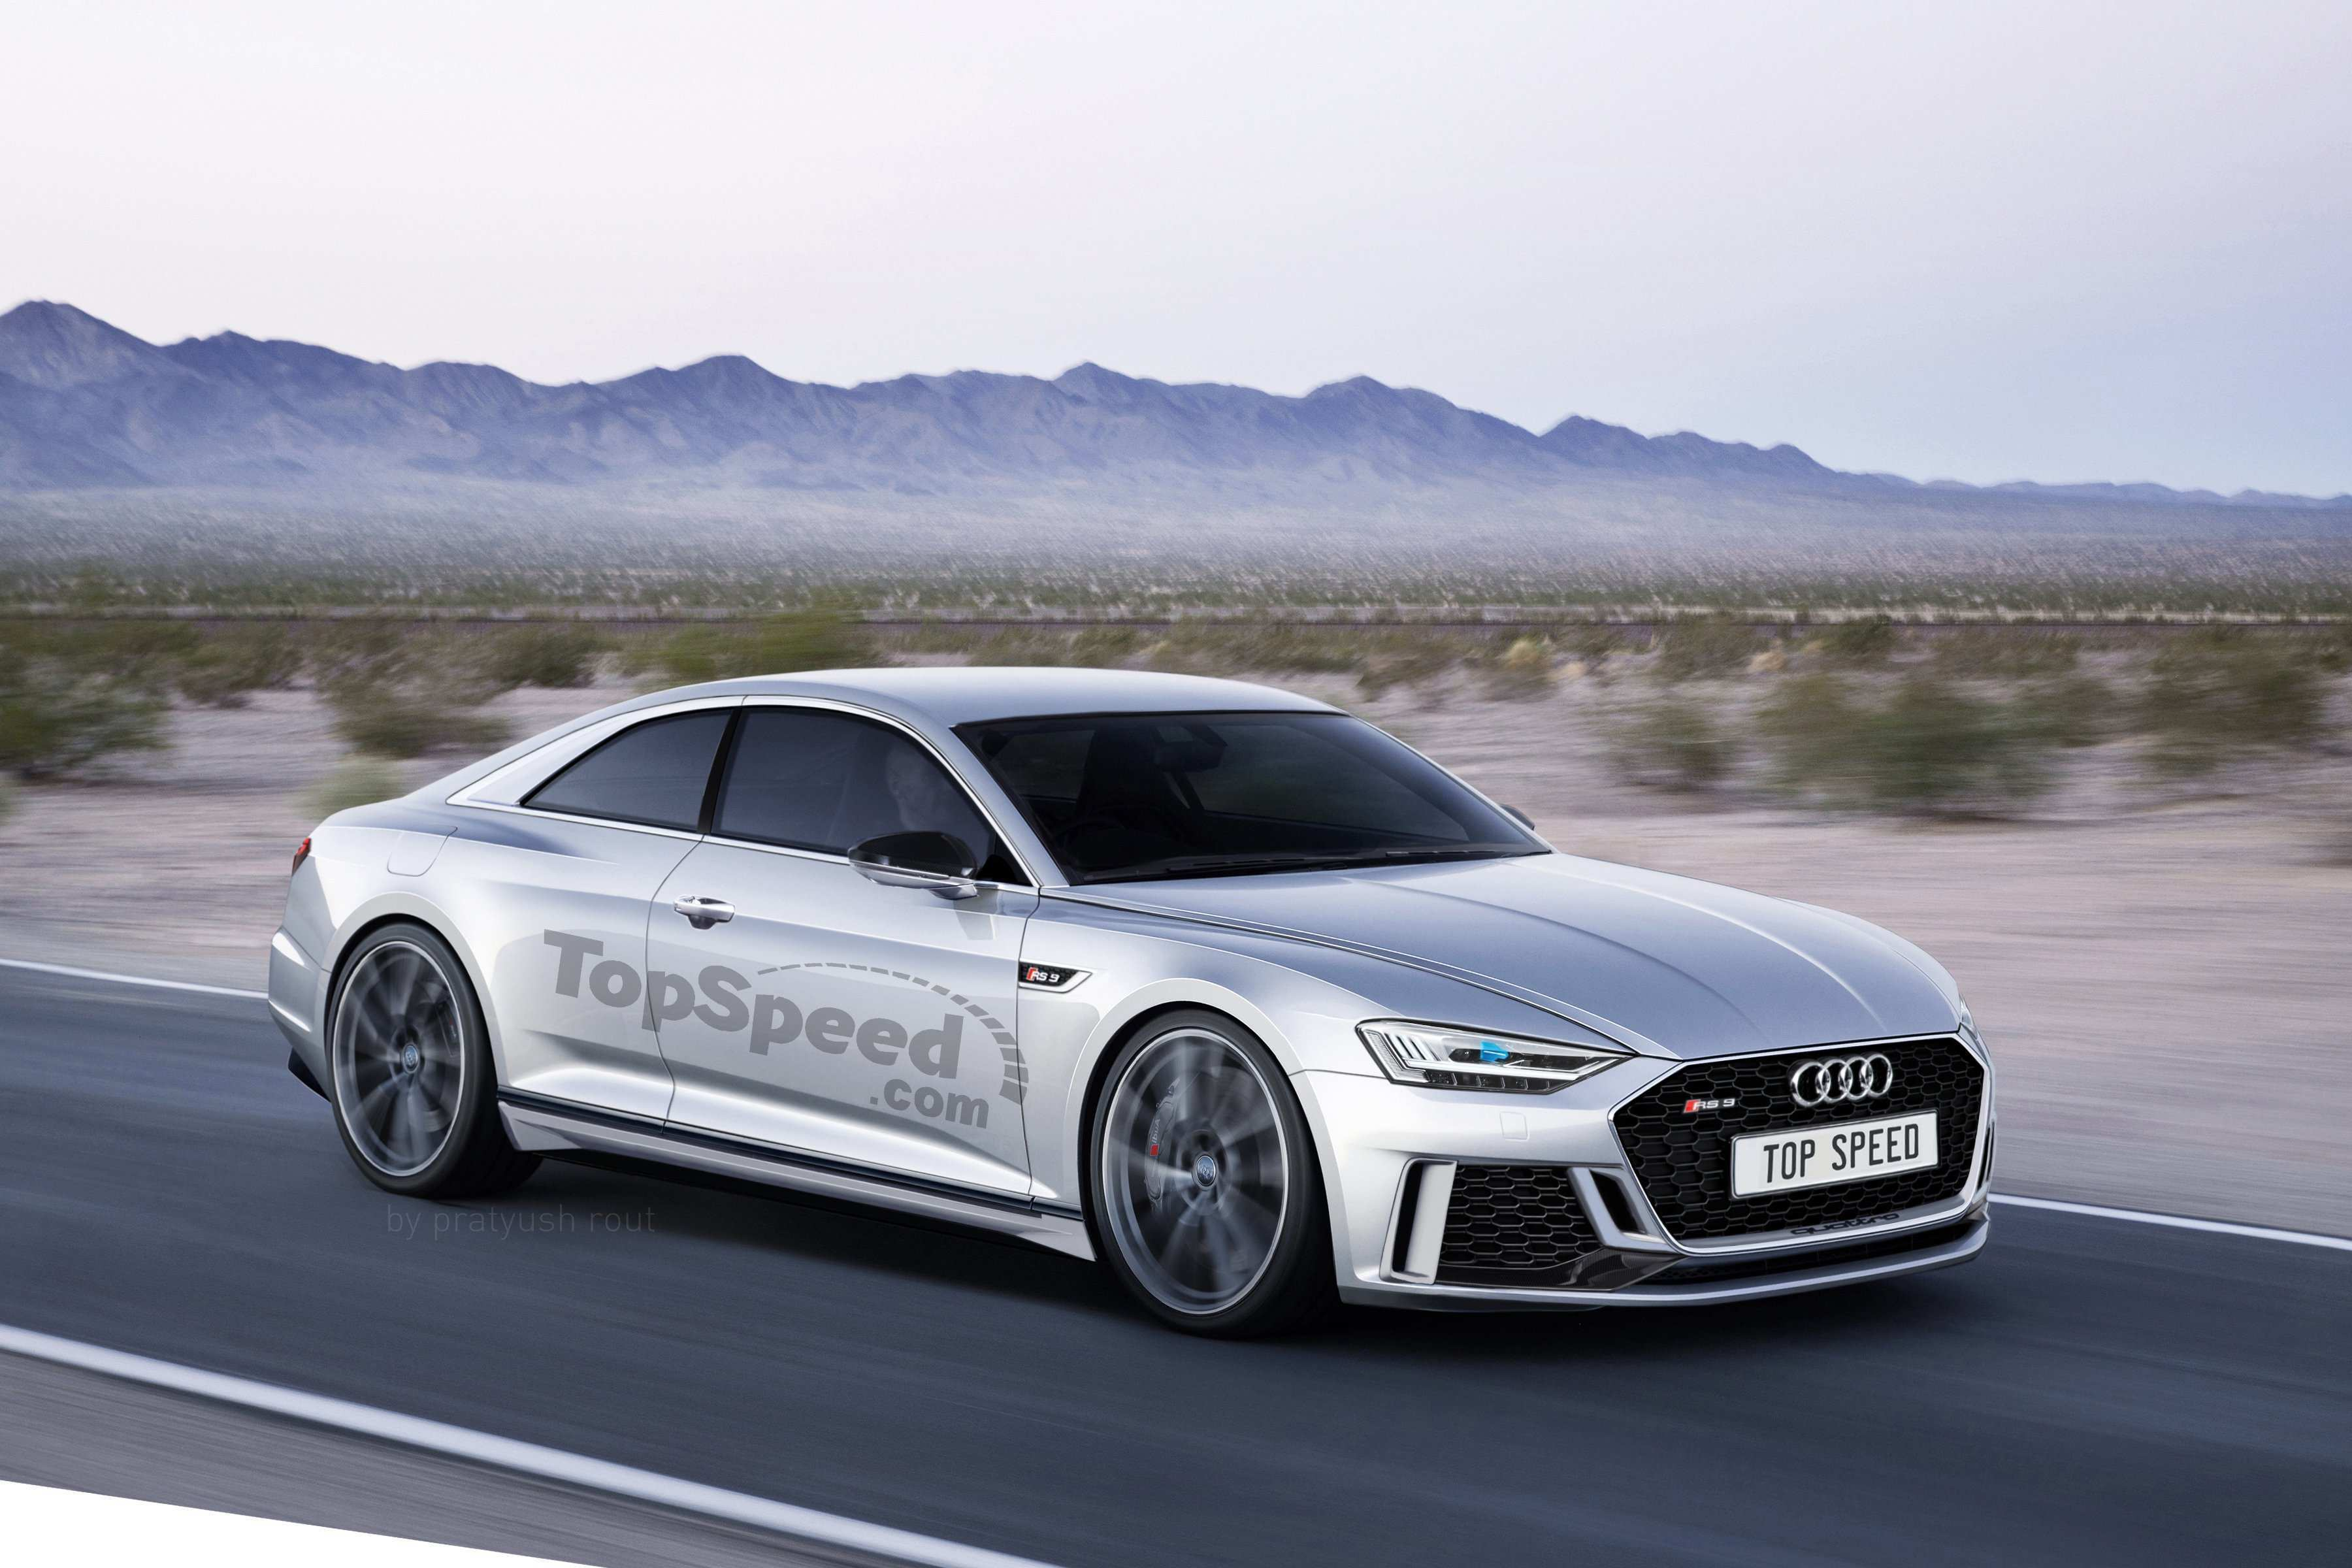 52 Concept of Best When Does Audi Release 2019 Models Review Specs And Release Date Configurations by Best When Does Audi Release 2019 Models Review Specs And Release Date